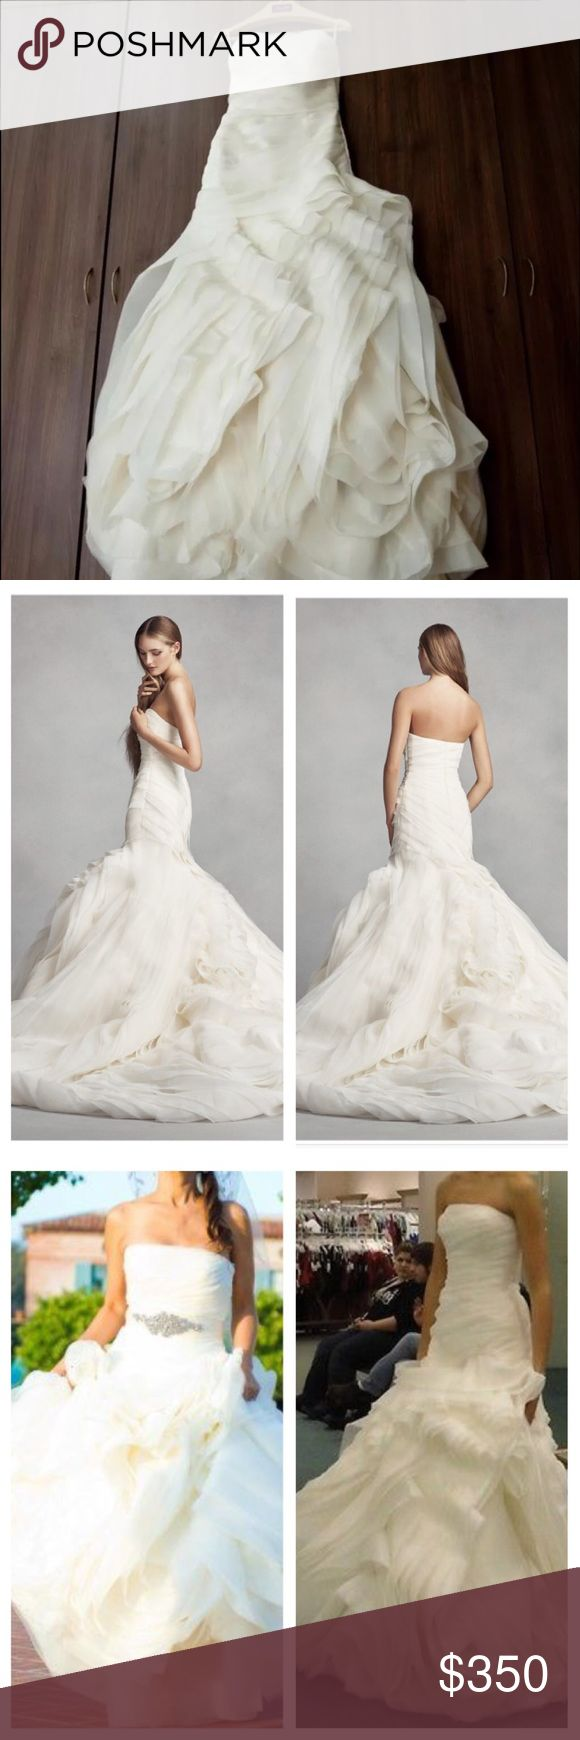 """Vera Wang Organza Trumpet wedding dress Worn only at the church ceremony (1 hour). No damage, stains, rips, oder, etc. Pet and smoke free home. In excellent condition. Inspected and guarantee by a certified professional dry cleaner (see authenticated picture). Retail price $1590+ tax. Purchased at David Bridal store. Buy with confident. No major alteration, just hammed 5""""3. Vera Wang Dresses Wedding"""